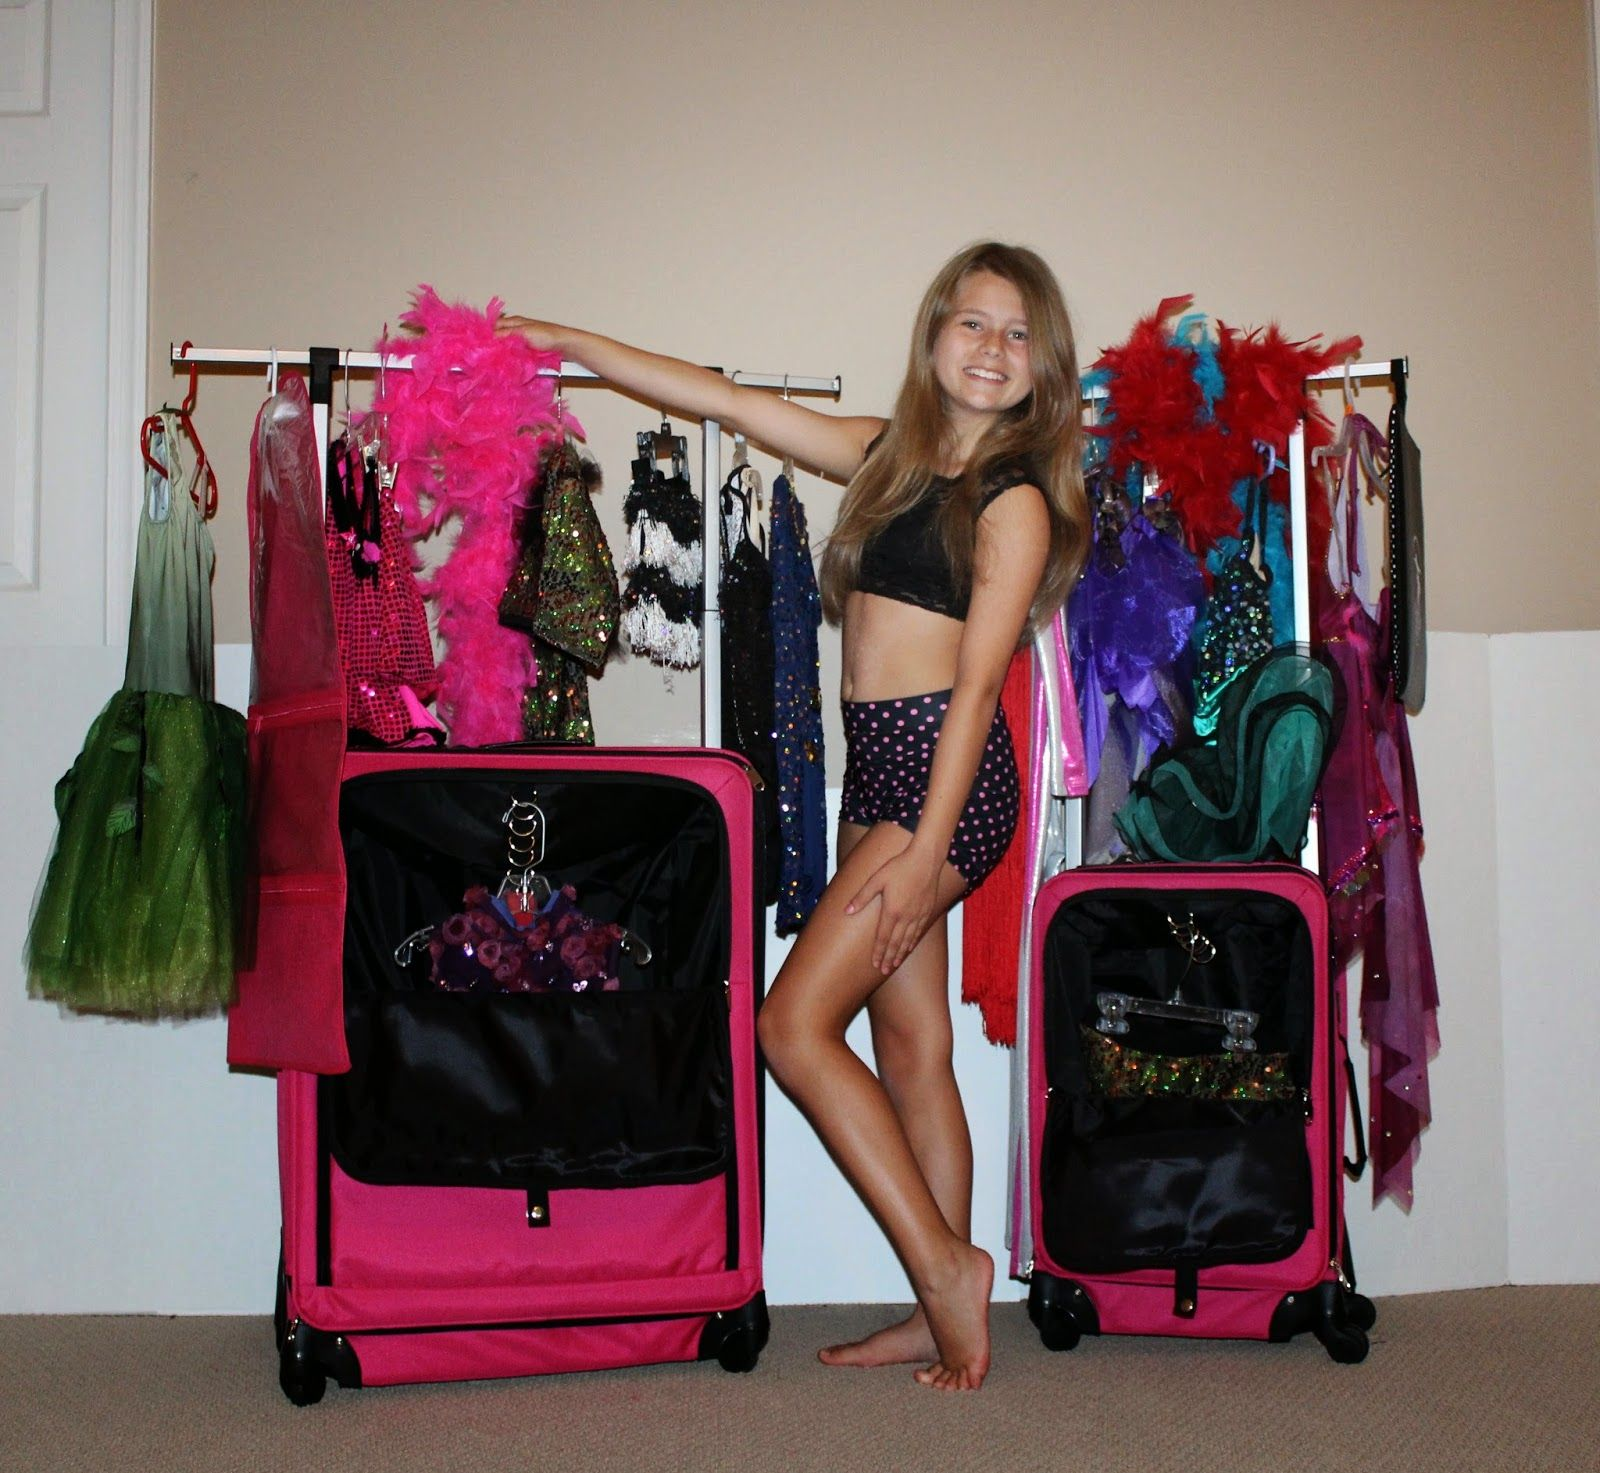 All things Dance: Let's talk about rolling dance bags | dance ...